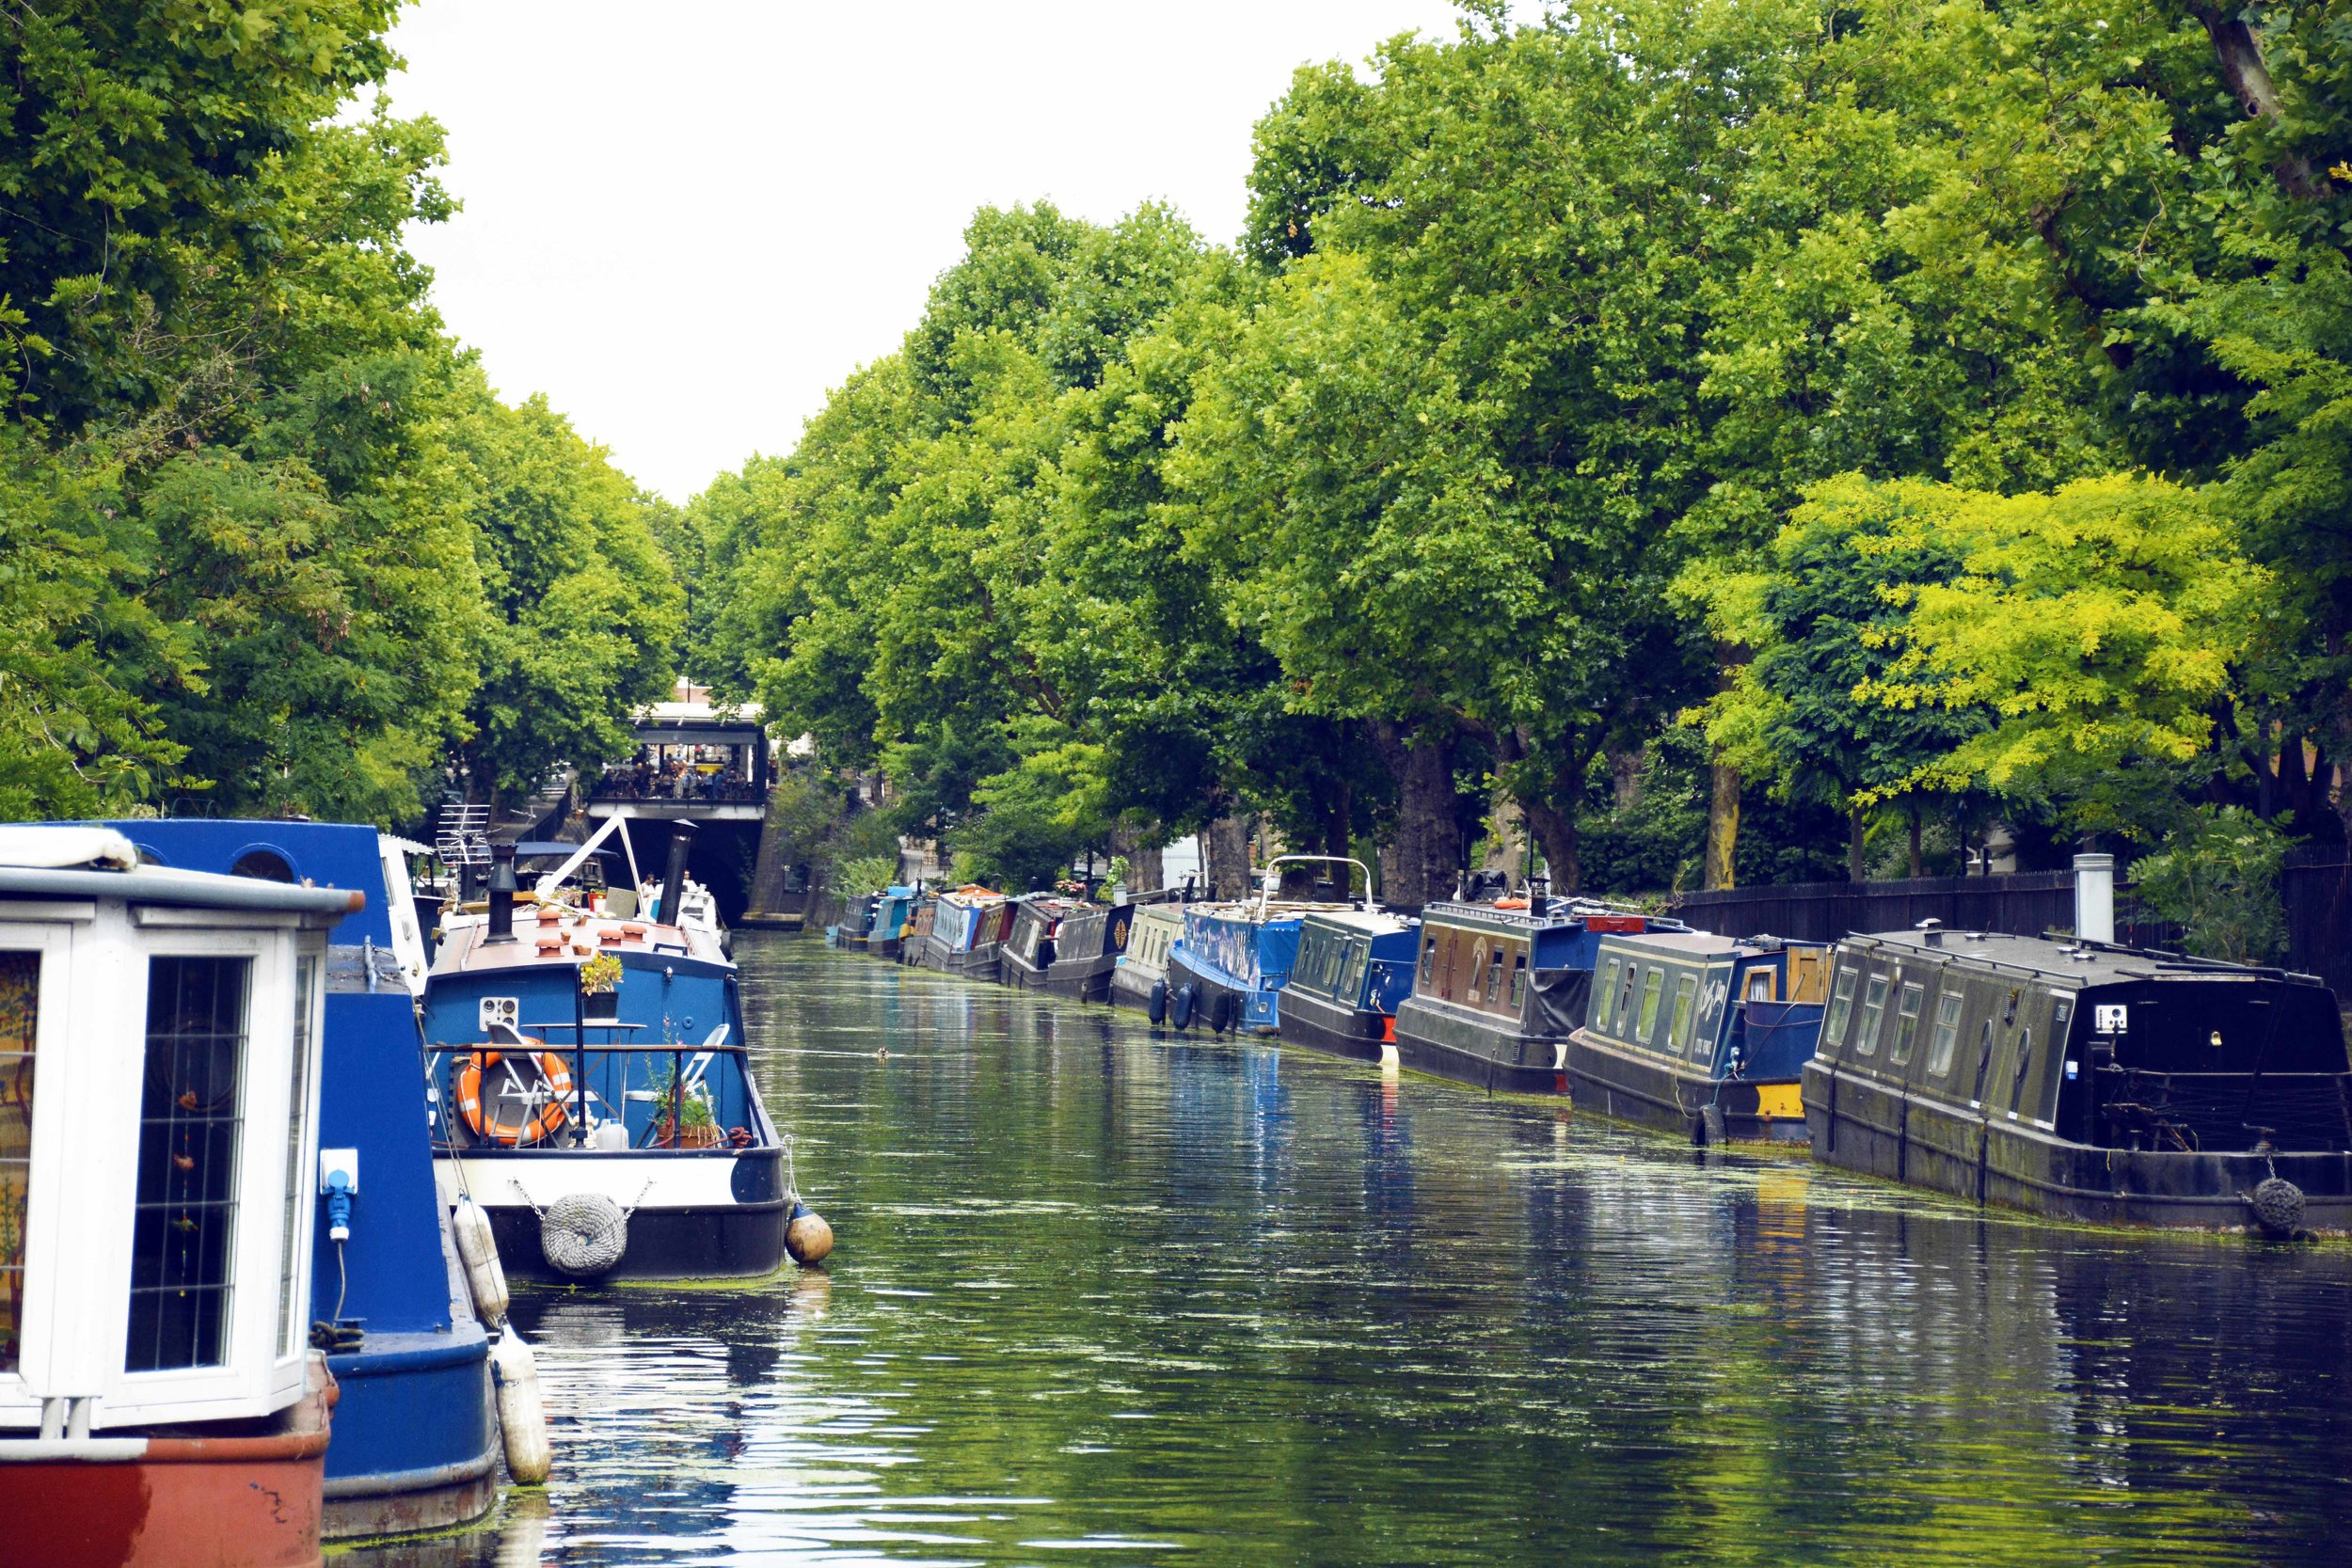 Regent's Canal and Little Venice - Explore one of London's most elegant neighbourhoods, with its stunning Regency neo-classical architecture combined with breathtaking panoramas and great music.